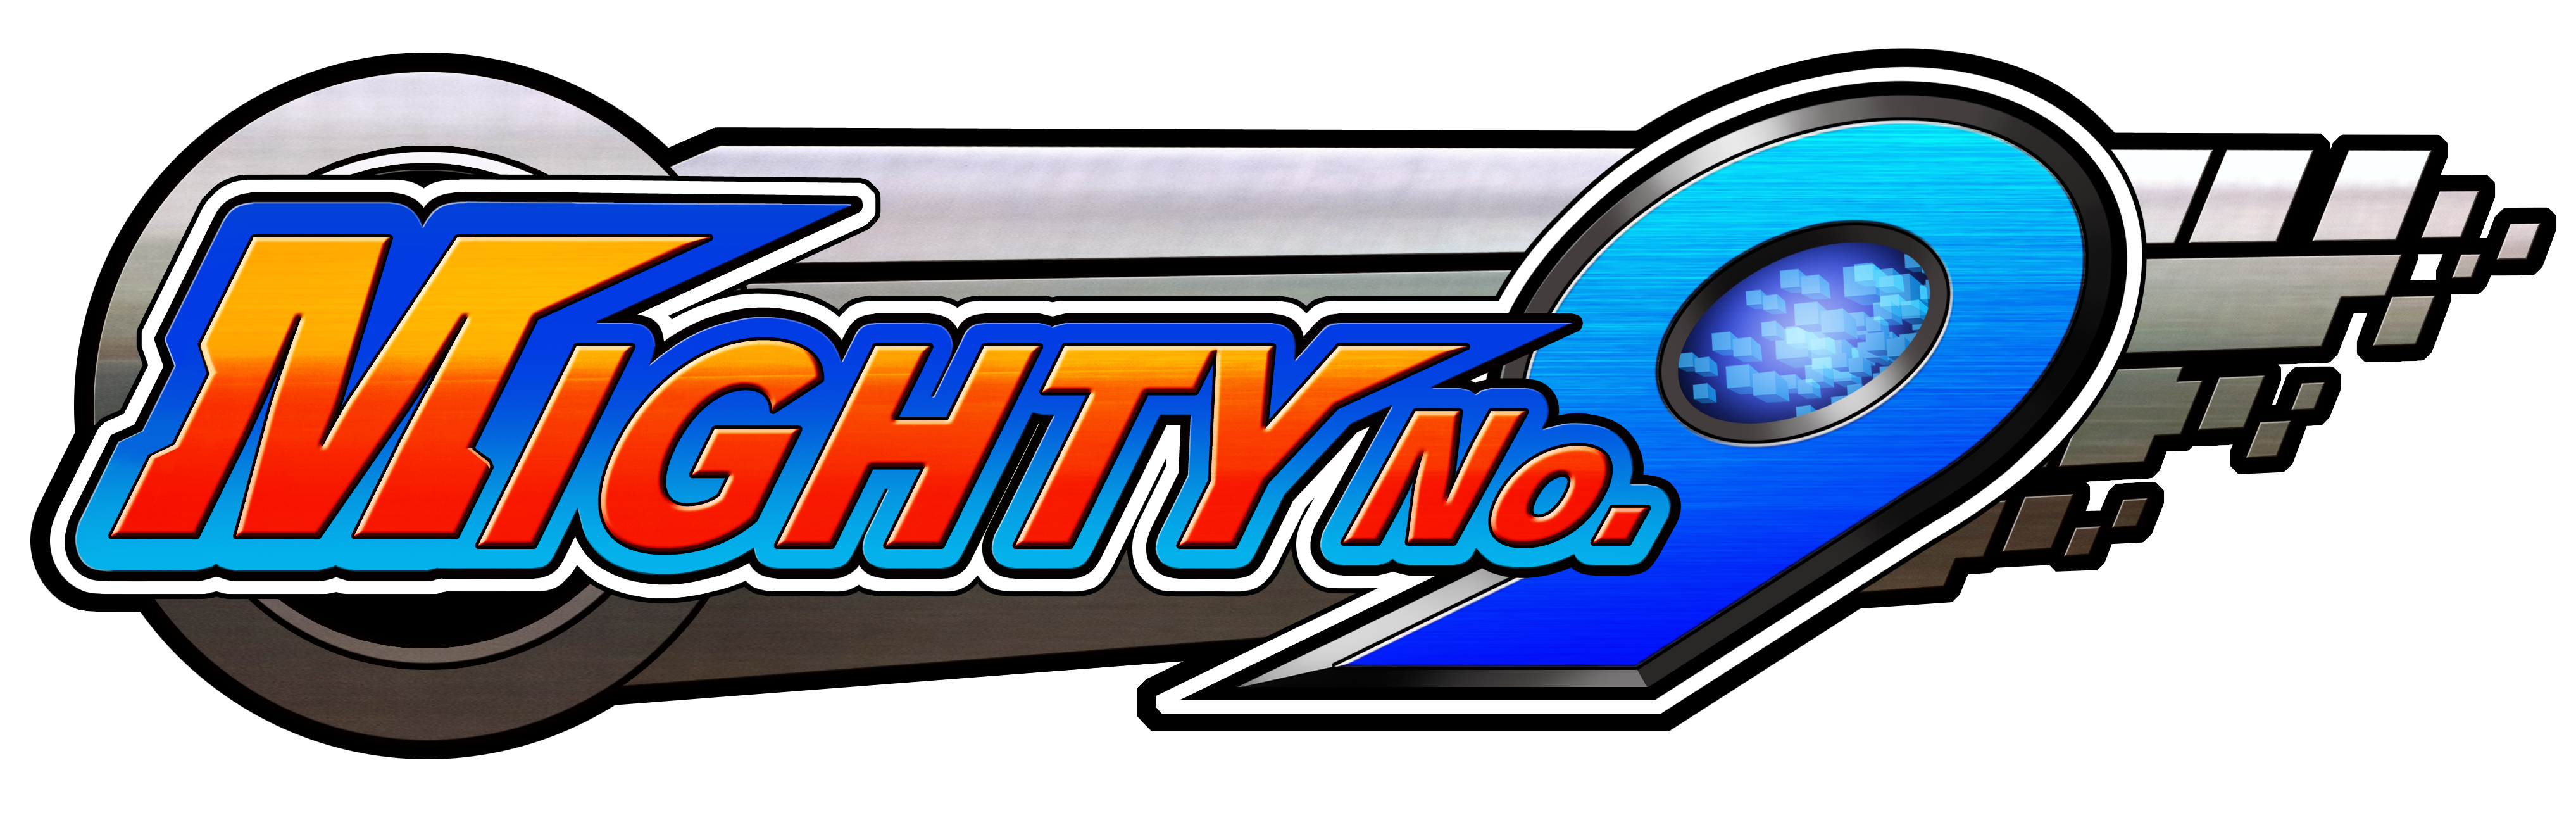 Mighty no 9 logo png. Family video game review